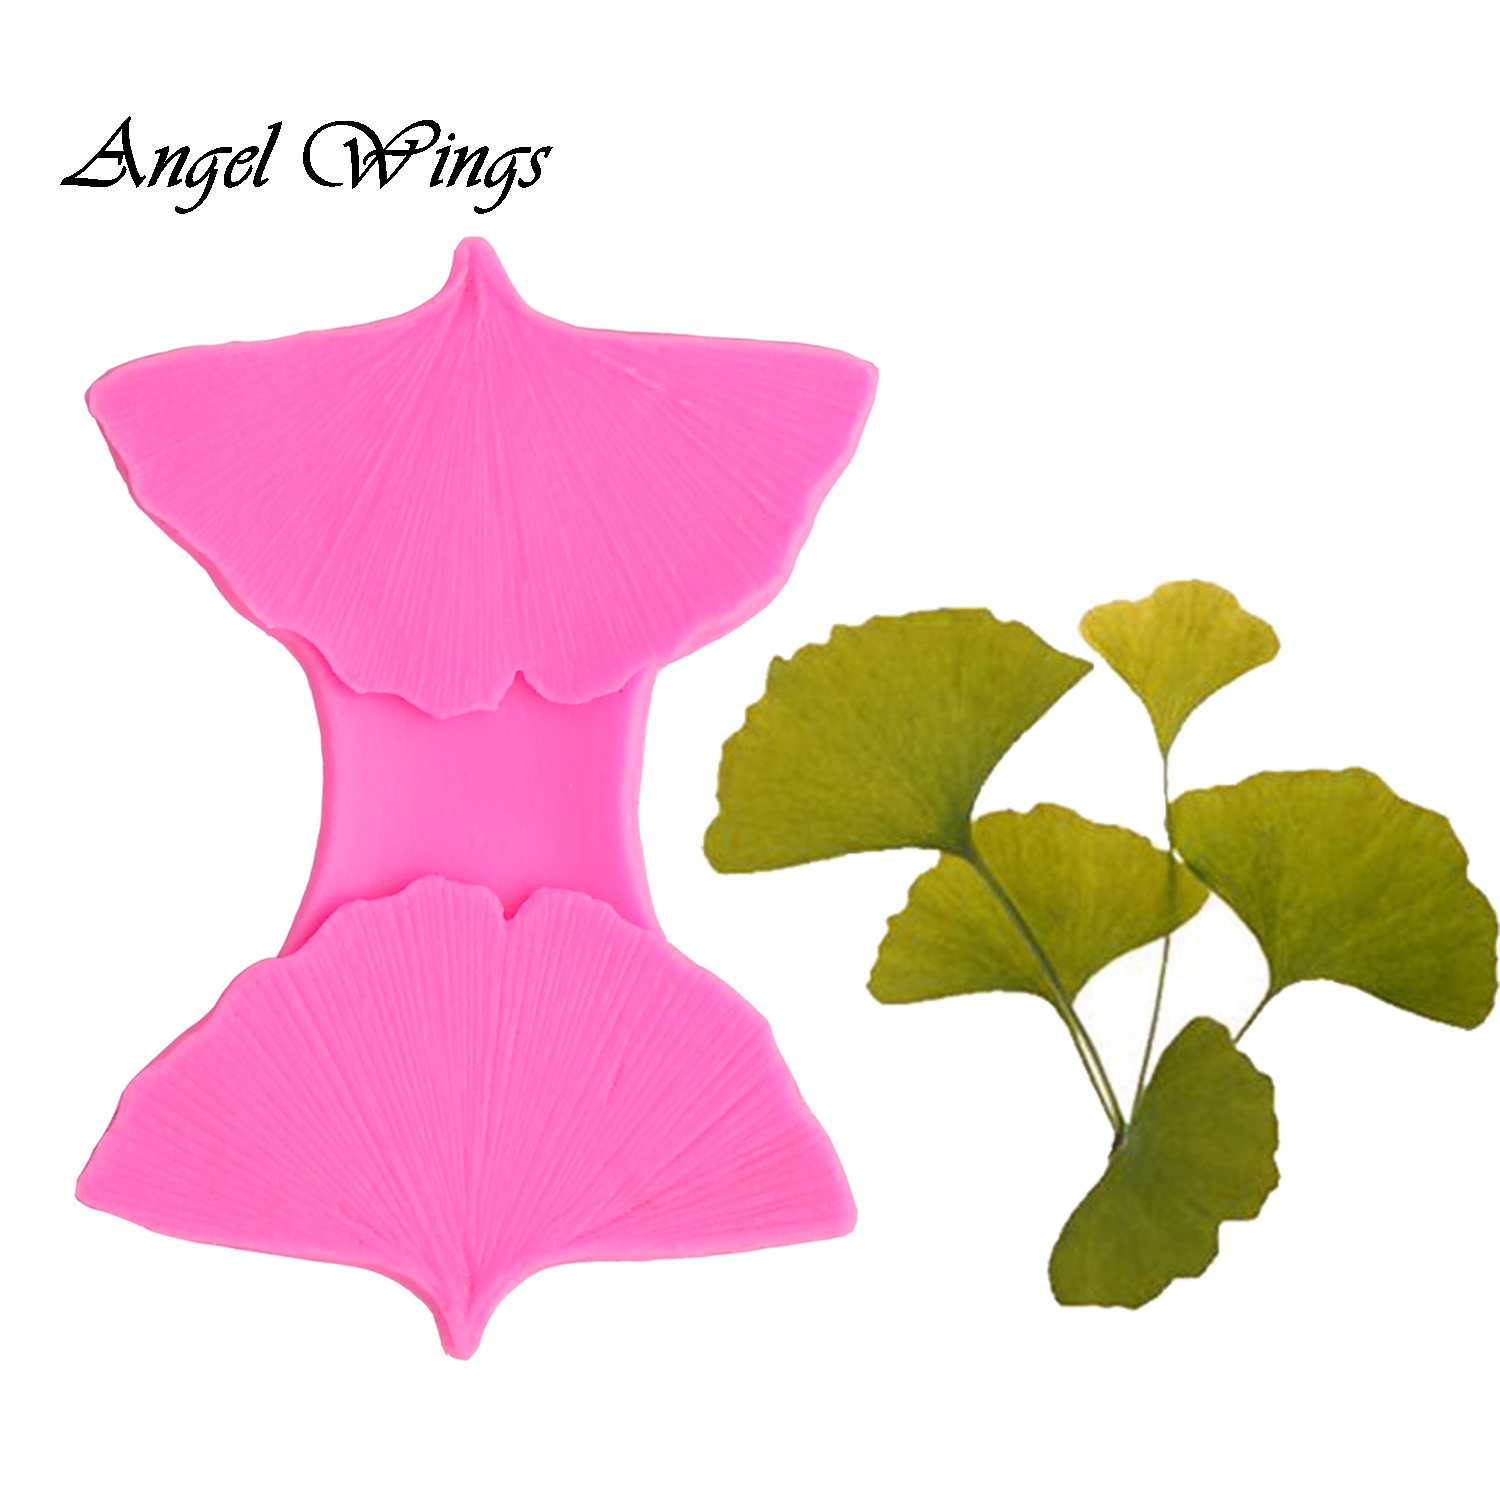 Ginkgo leaves petal Silicone mold for cake decorating tools chocolate Resin Molds Fondant Sugar Craft Molds DIY Cake F1419